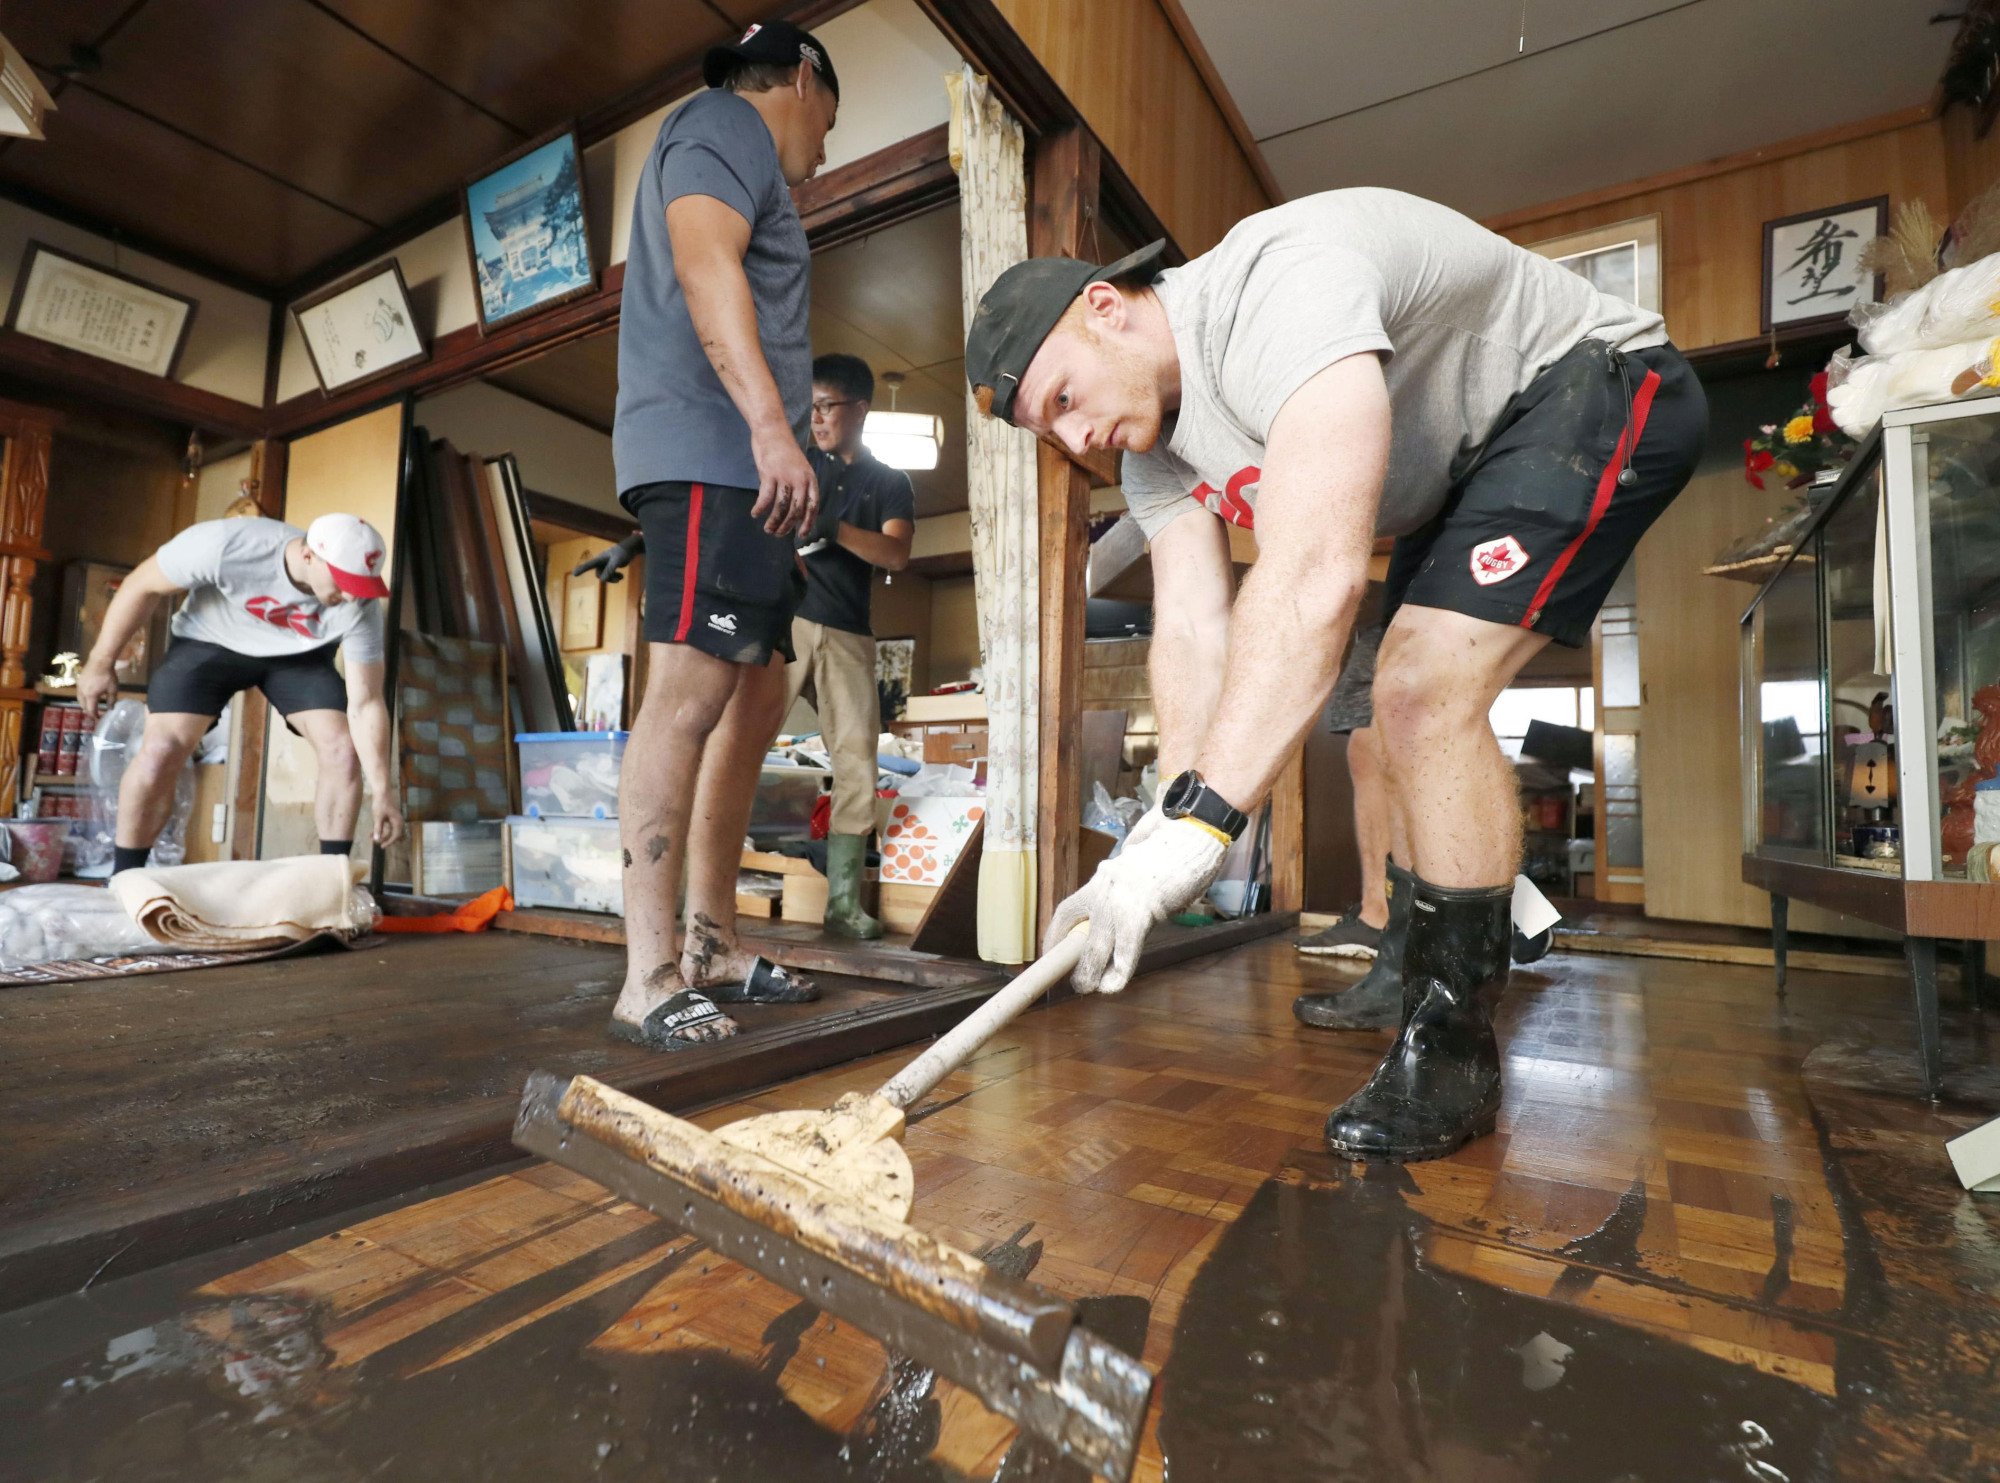 Good guests: Members of the Canadian rugby team help clean up in Fukushima Prefecture after it was hit by Typhoon Hagibis earlier this month. | REUTERS